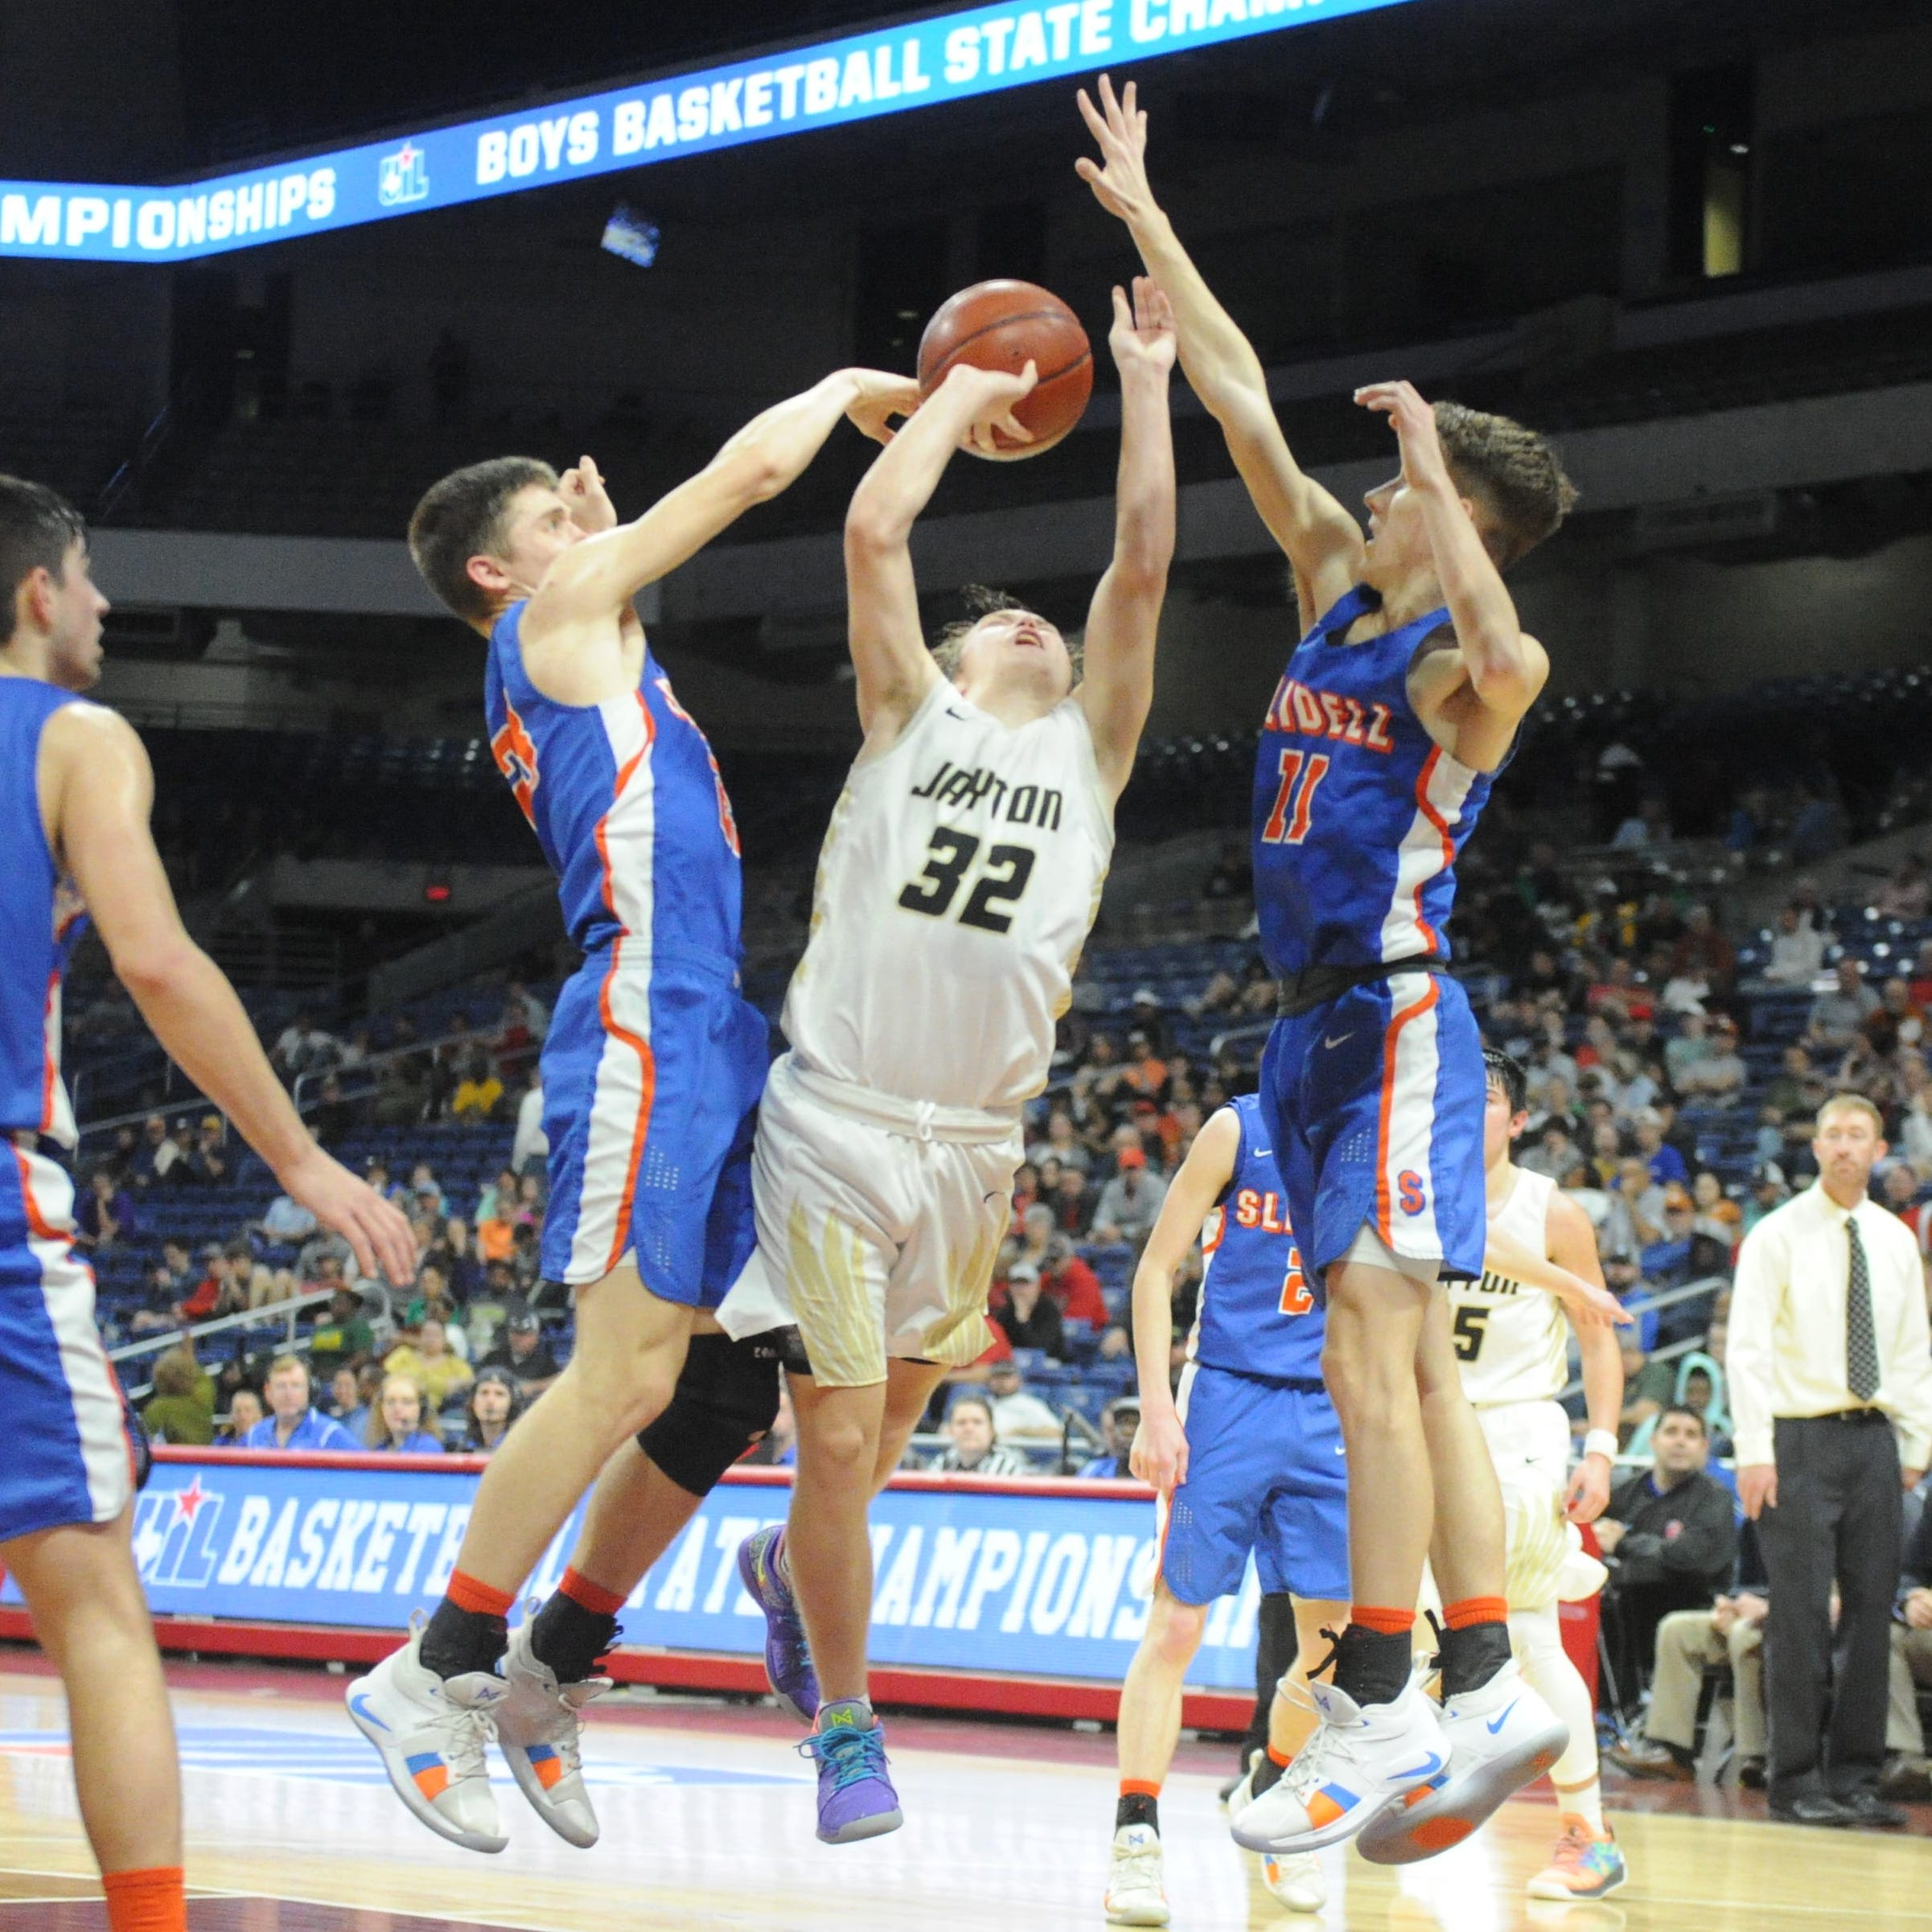 Slidell denies Jayton in Class 1A boys basketball state championship